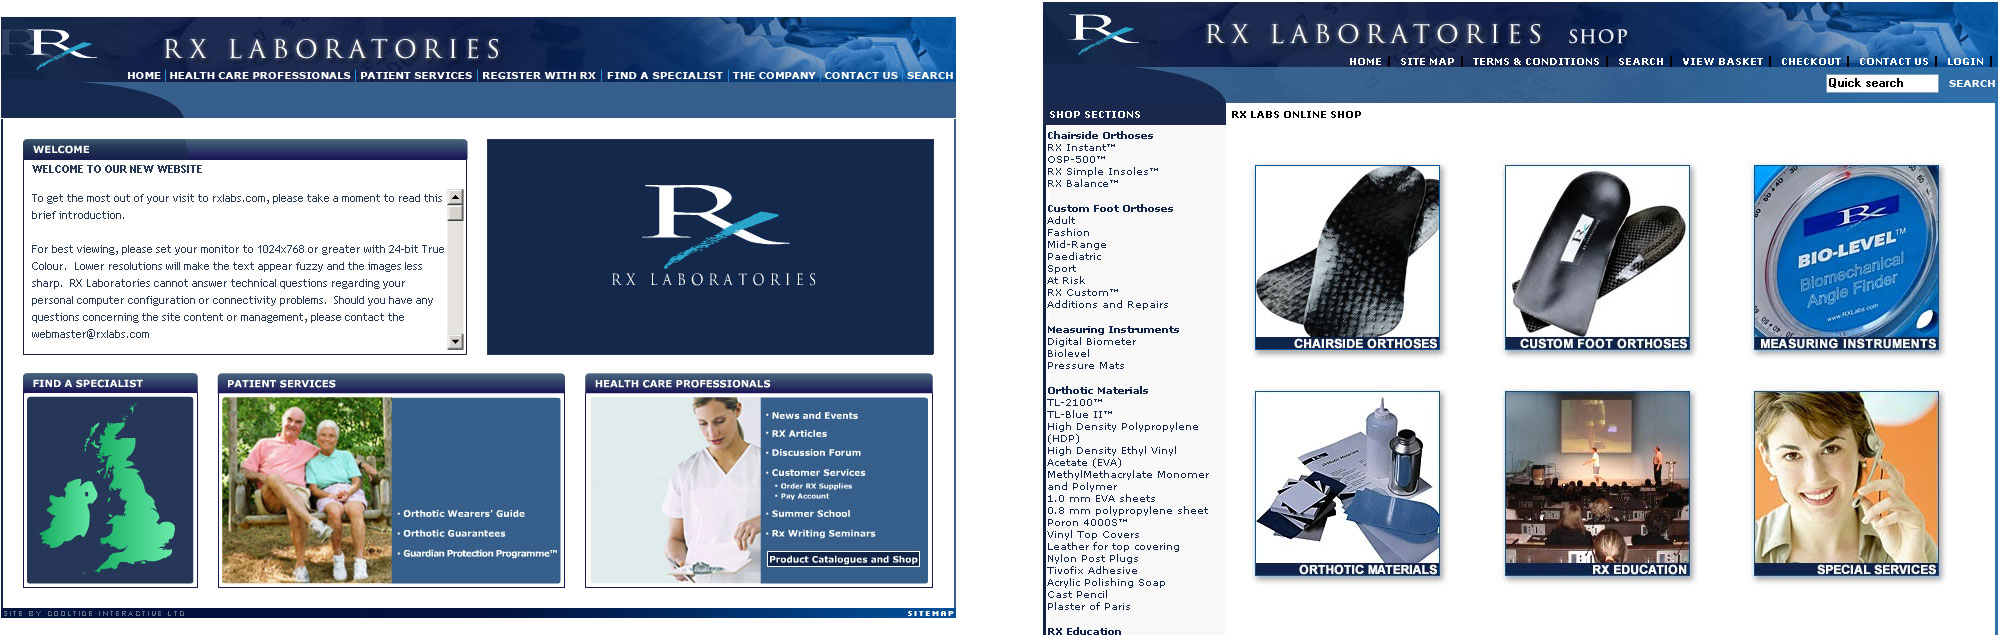 RX Laboratories